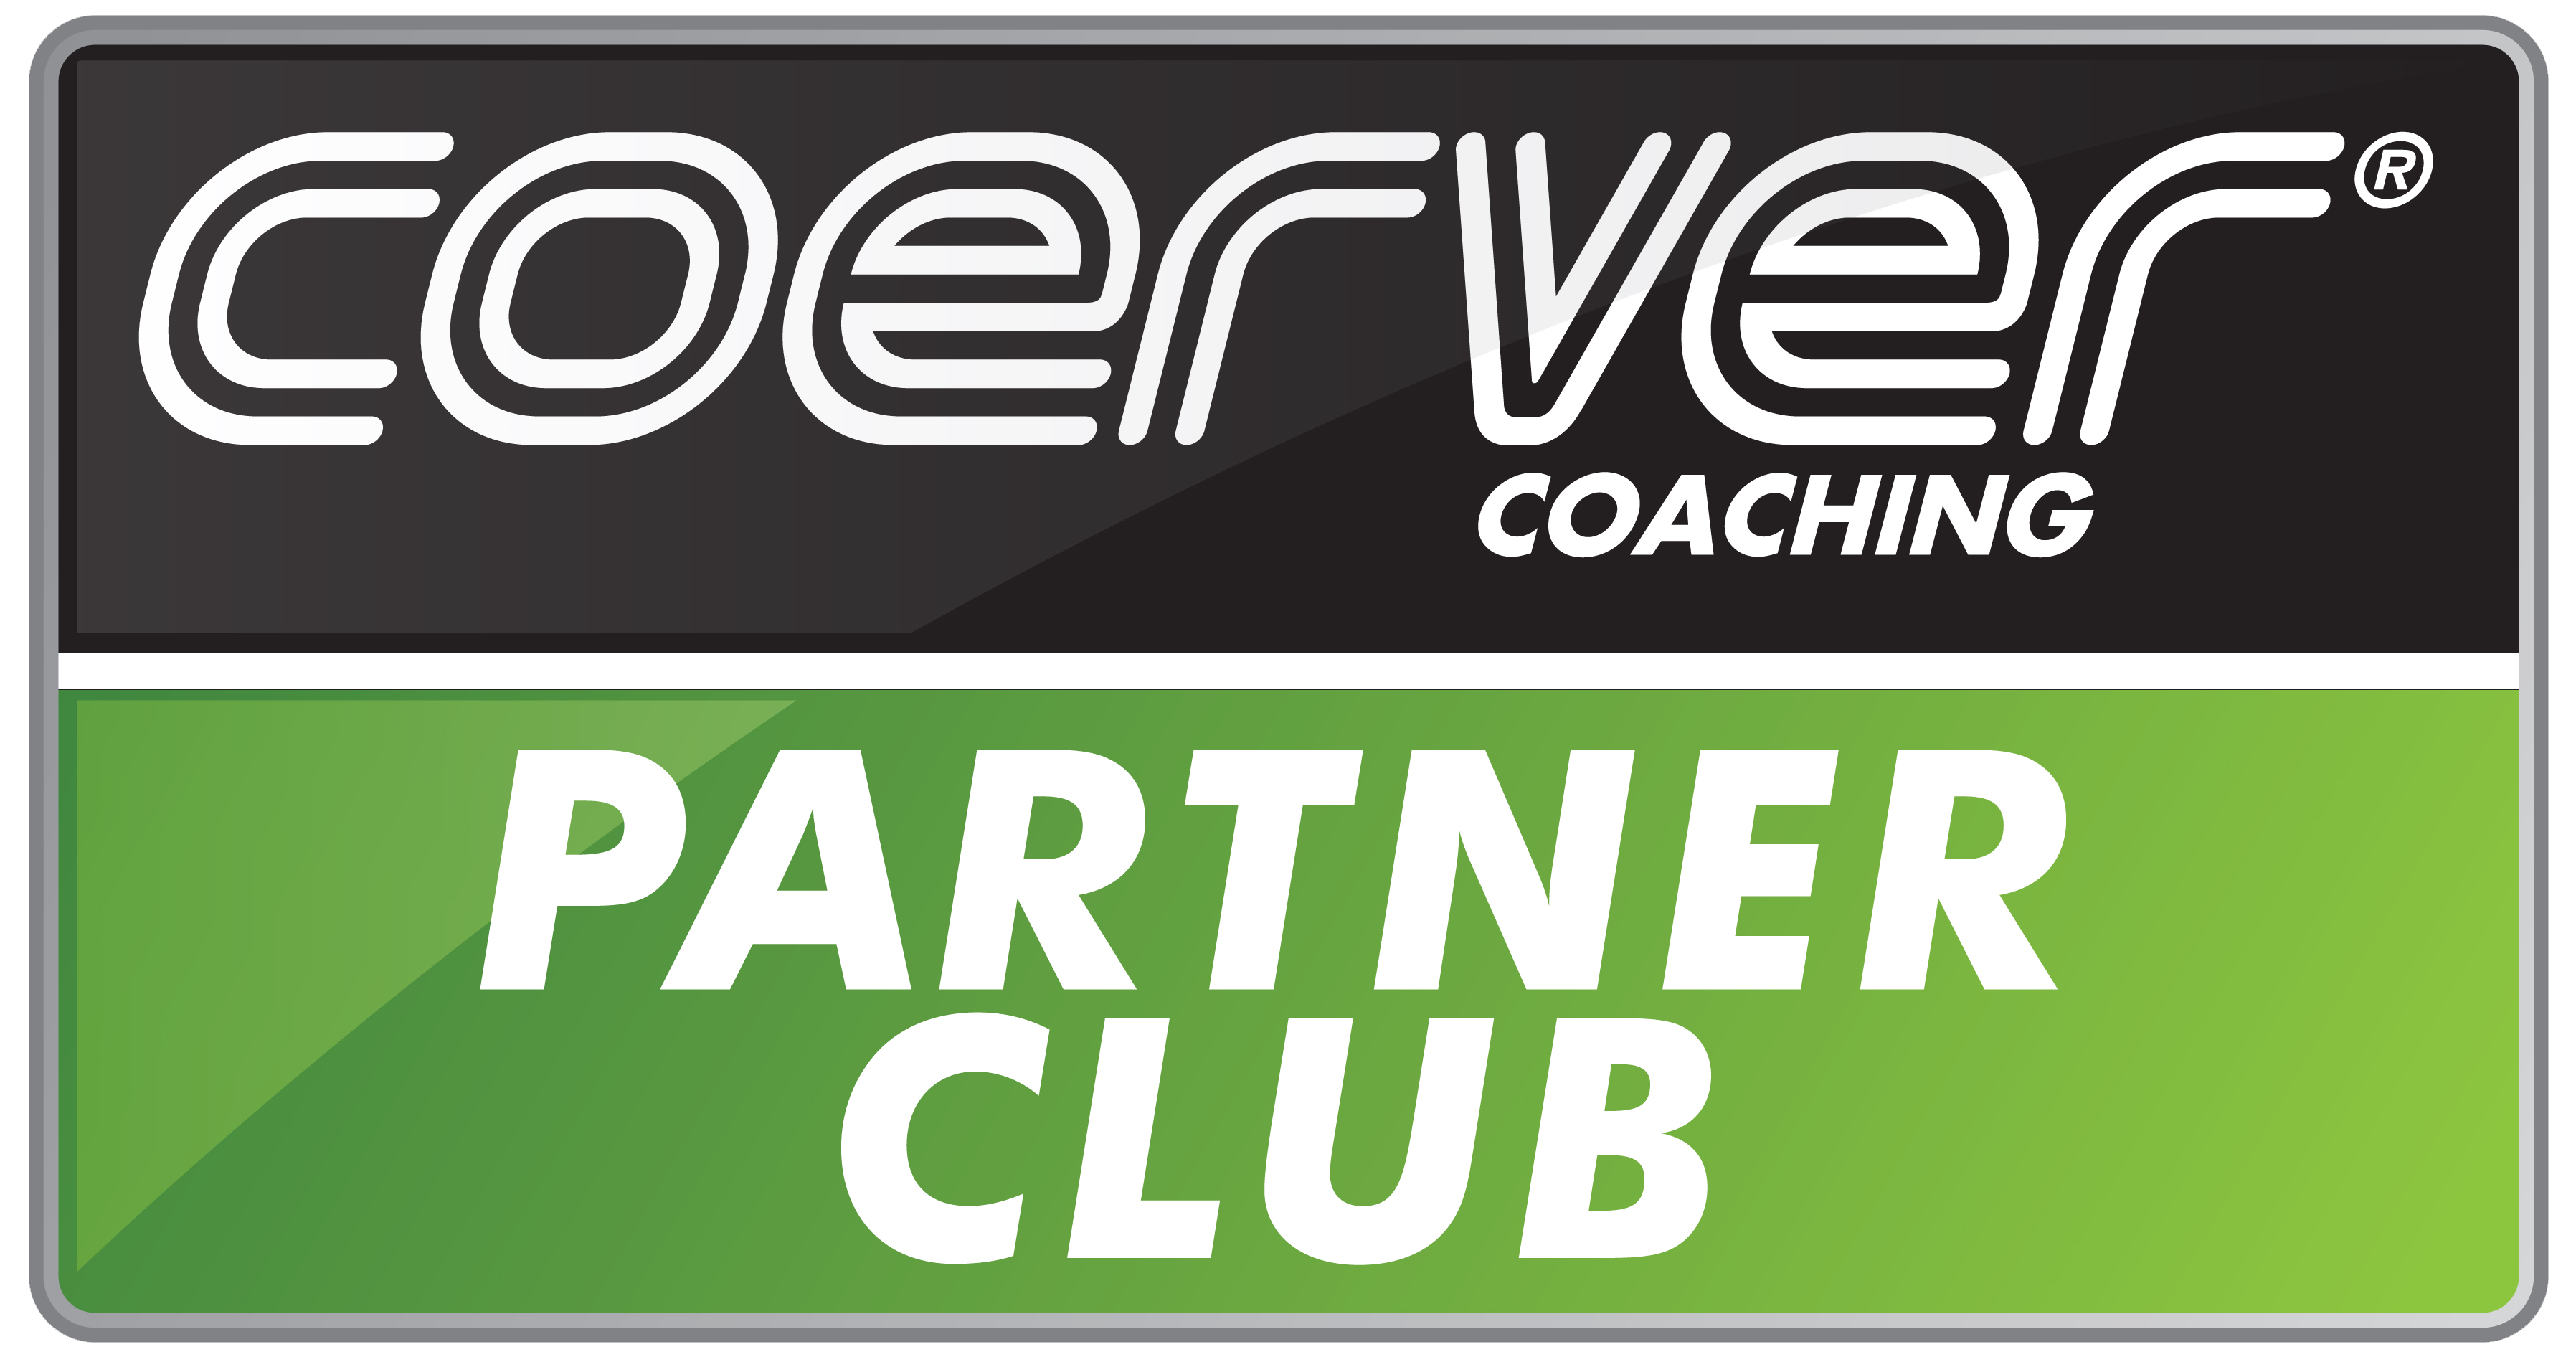 PARTNER CLUB LOGO high res